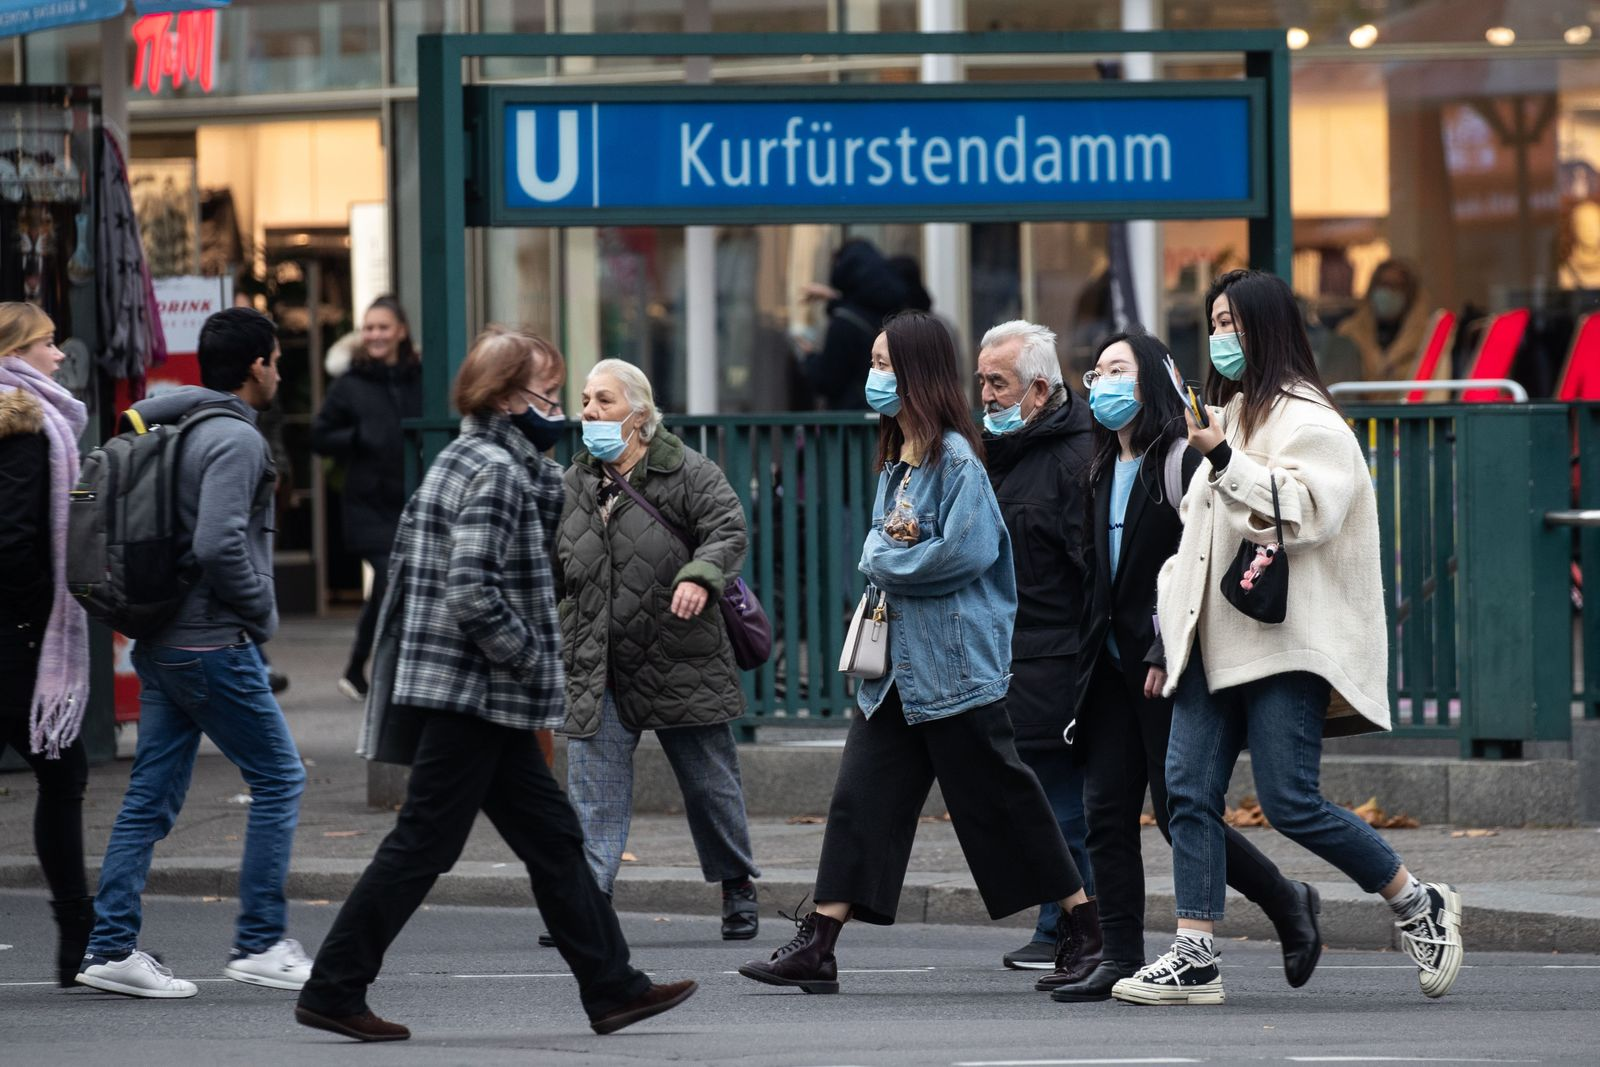 Urgent recommendation to wear a face mask in public area in Berlin, Germany - 20 Oct 2020